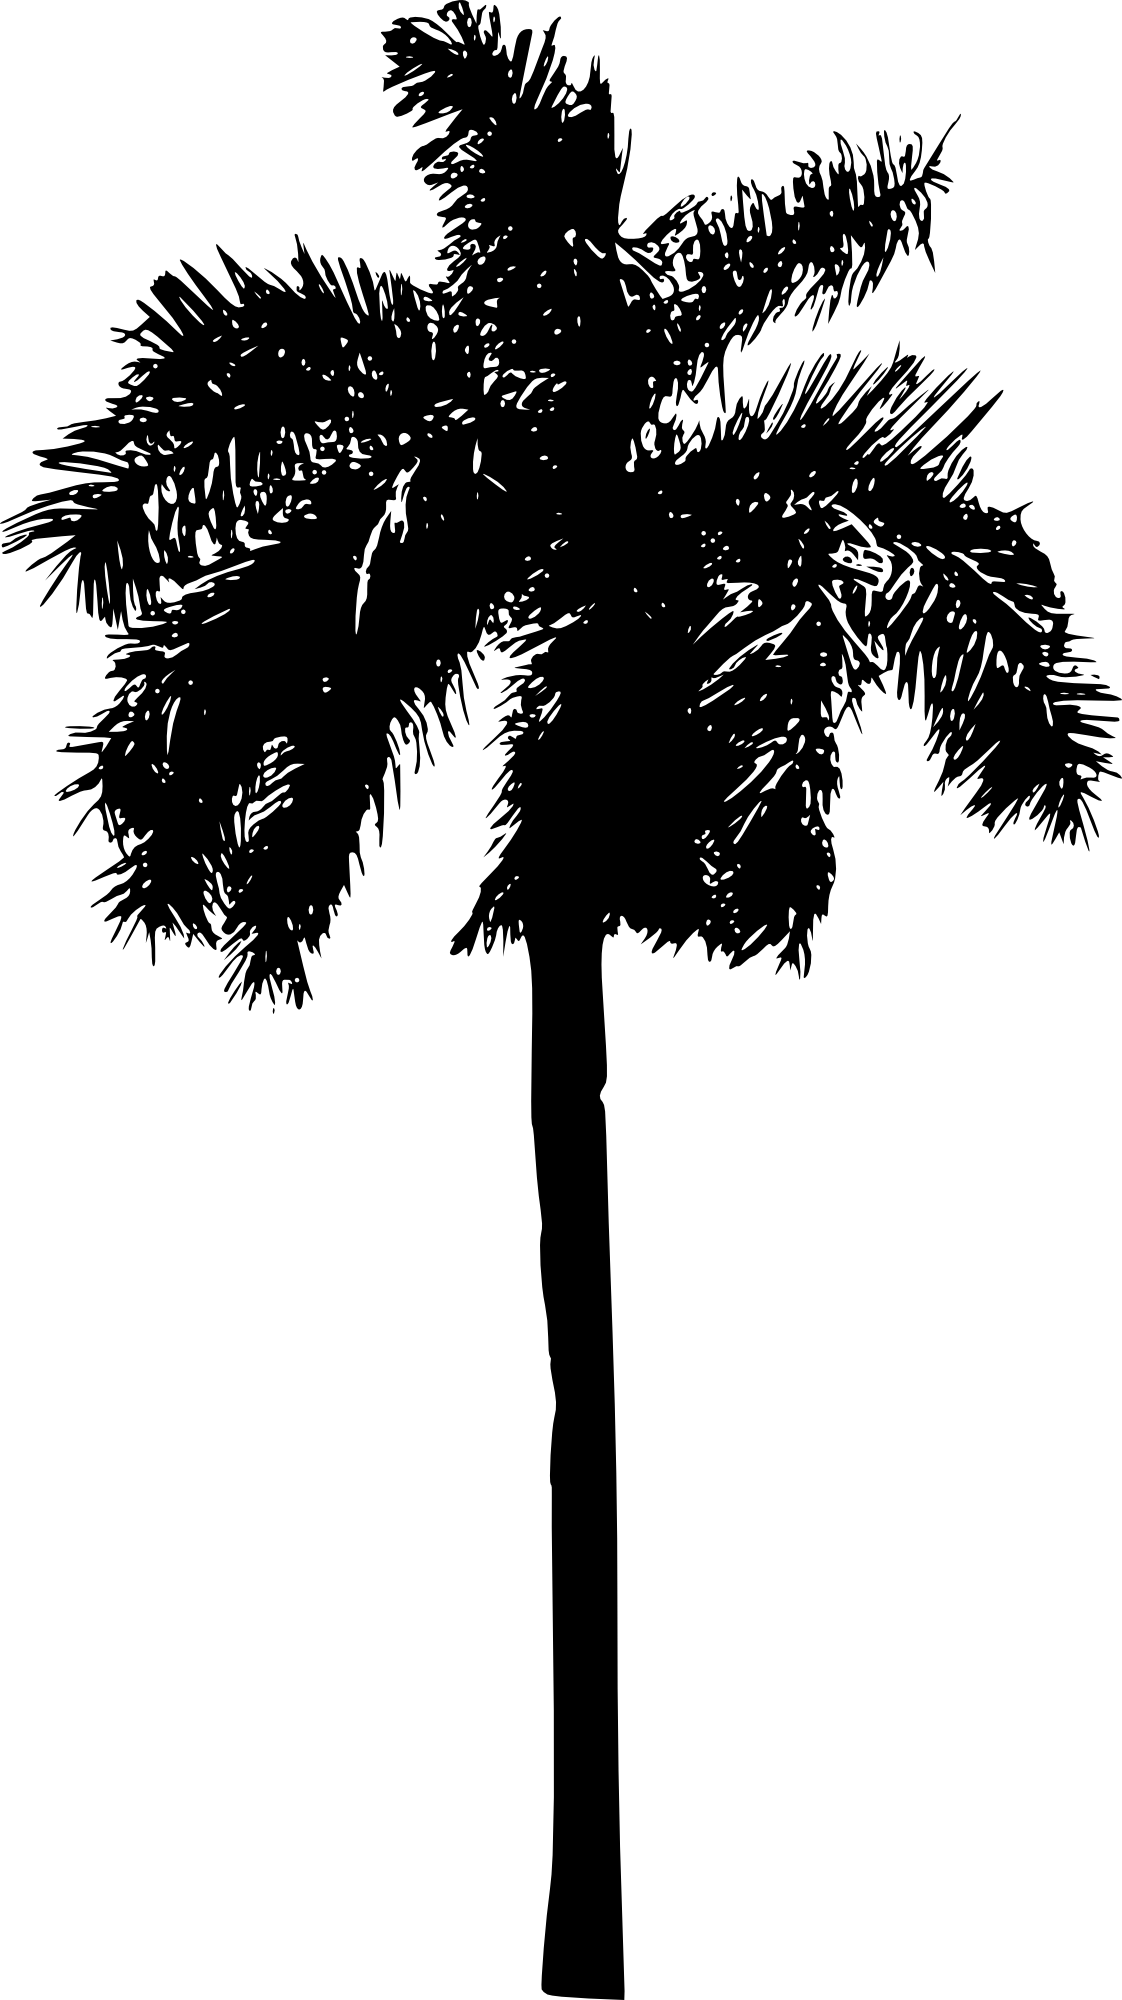 Palm tree outline png. Silhouettes transparent background